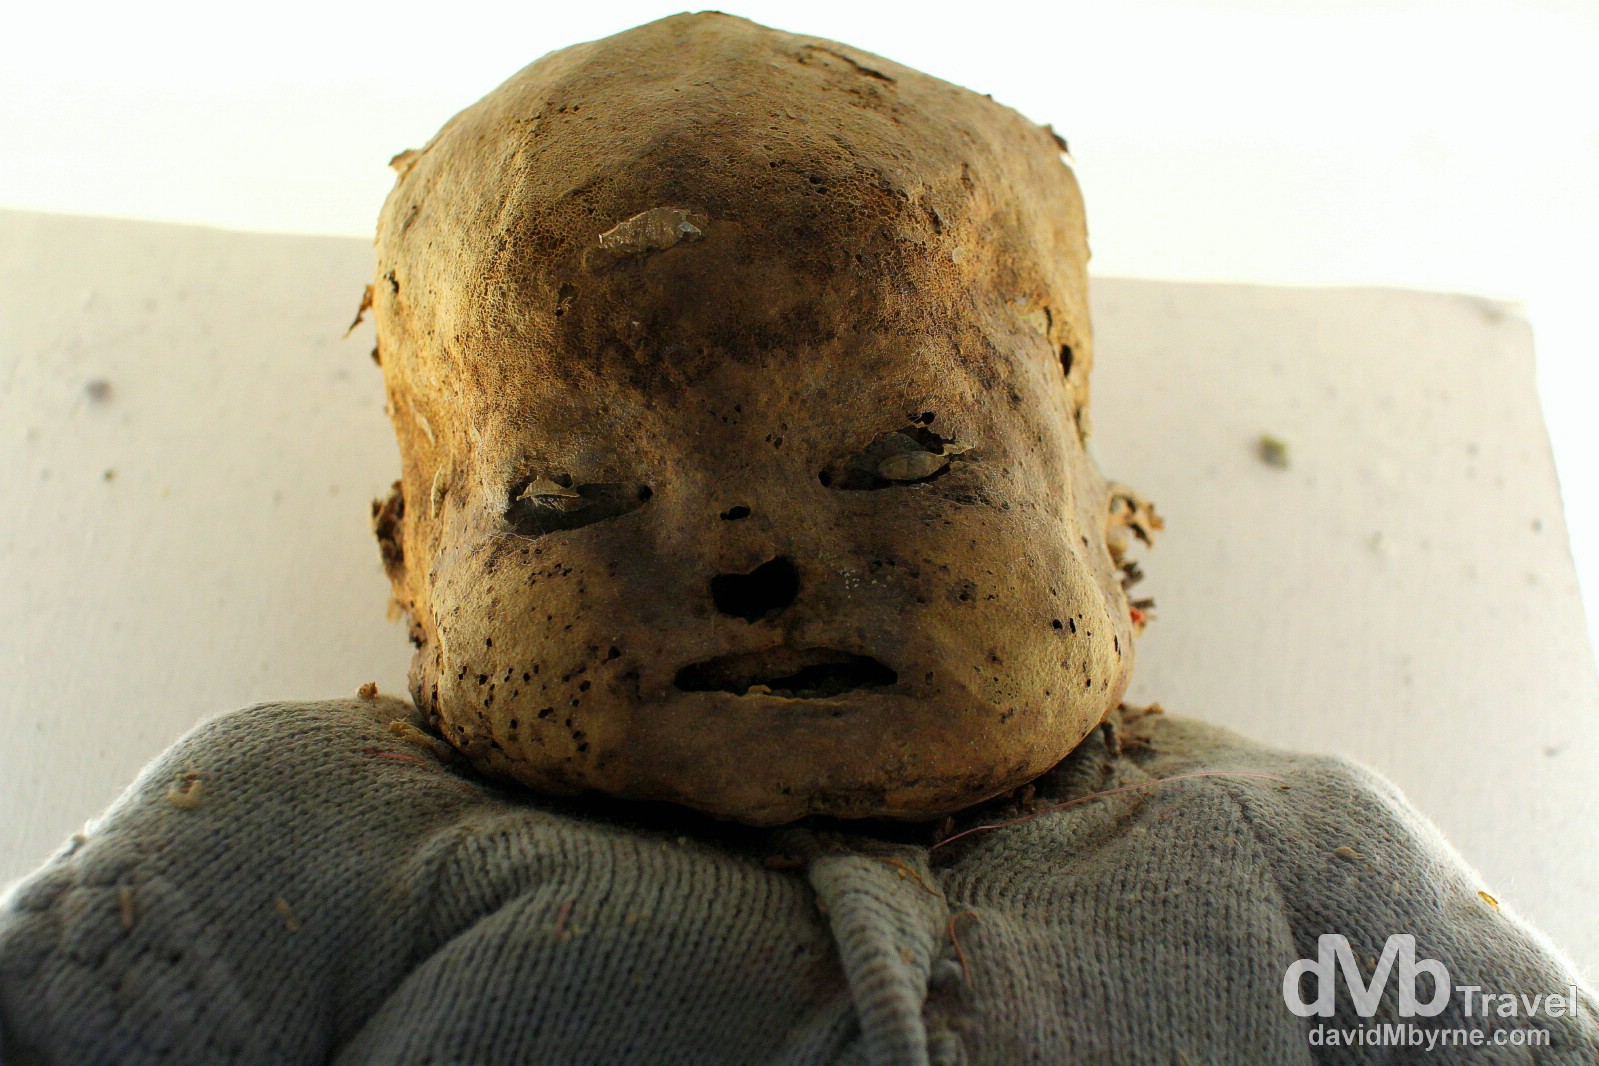 Museum of the Mummies, Quanajuato, Mexico. April 24th 2013.